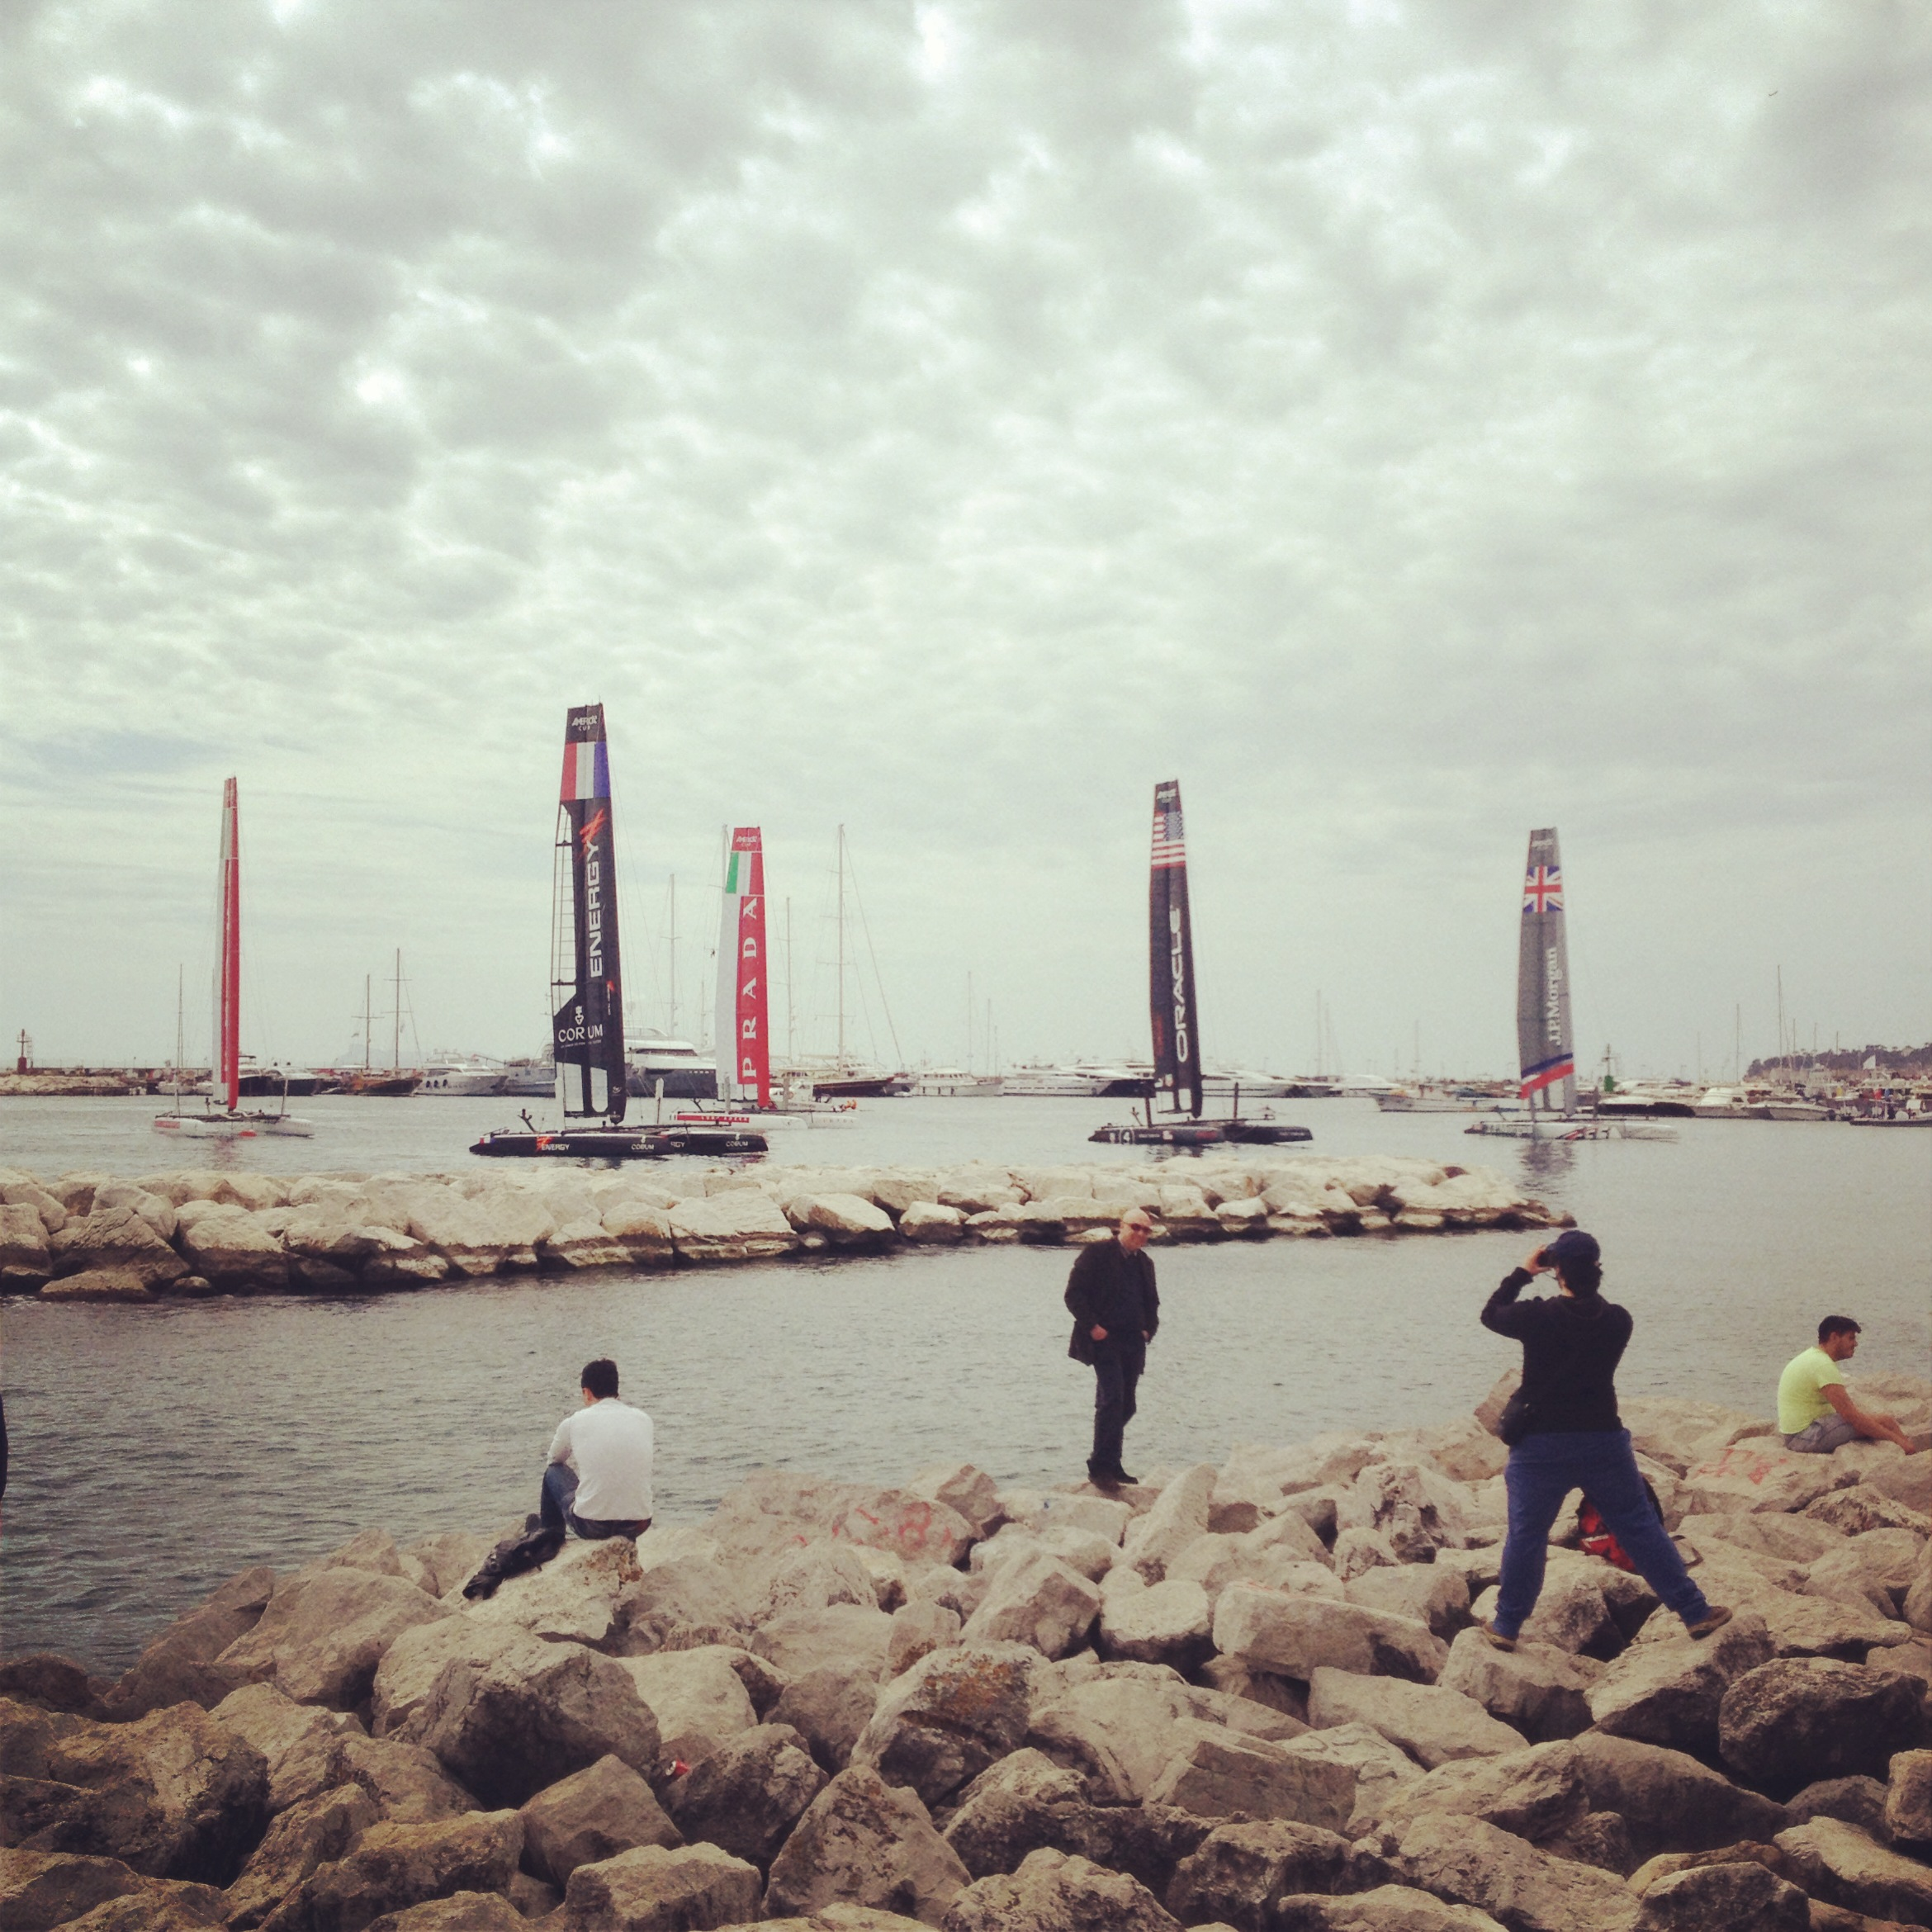 America's Cup World Series in Naples